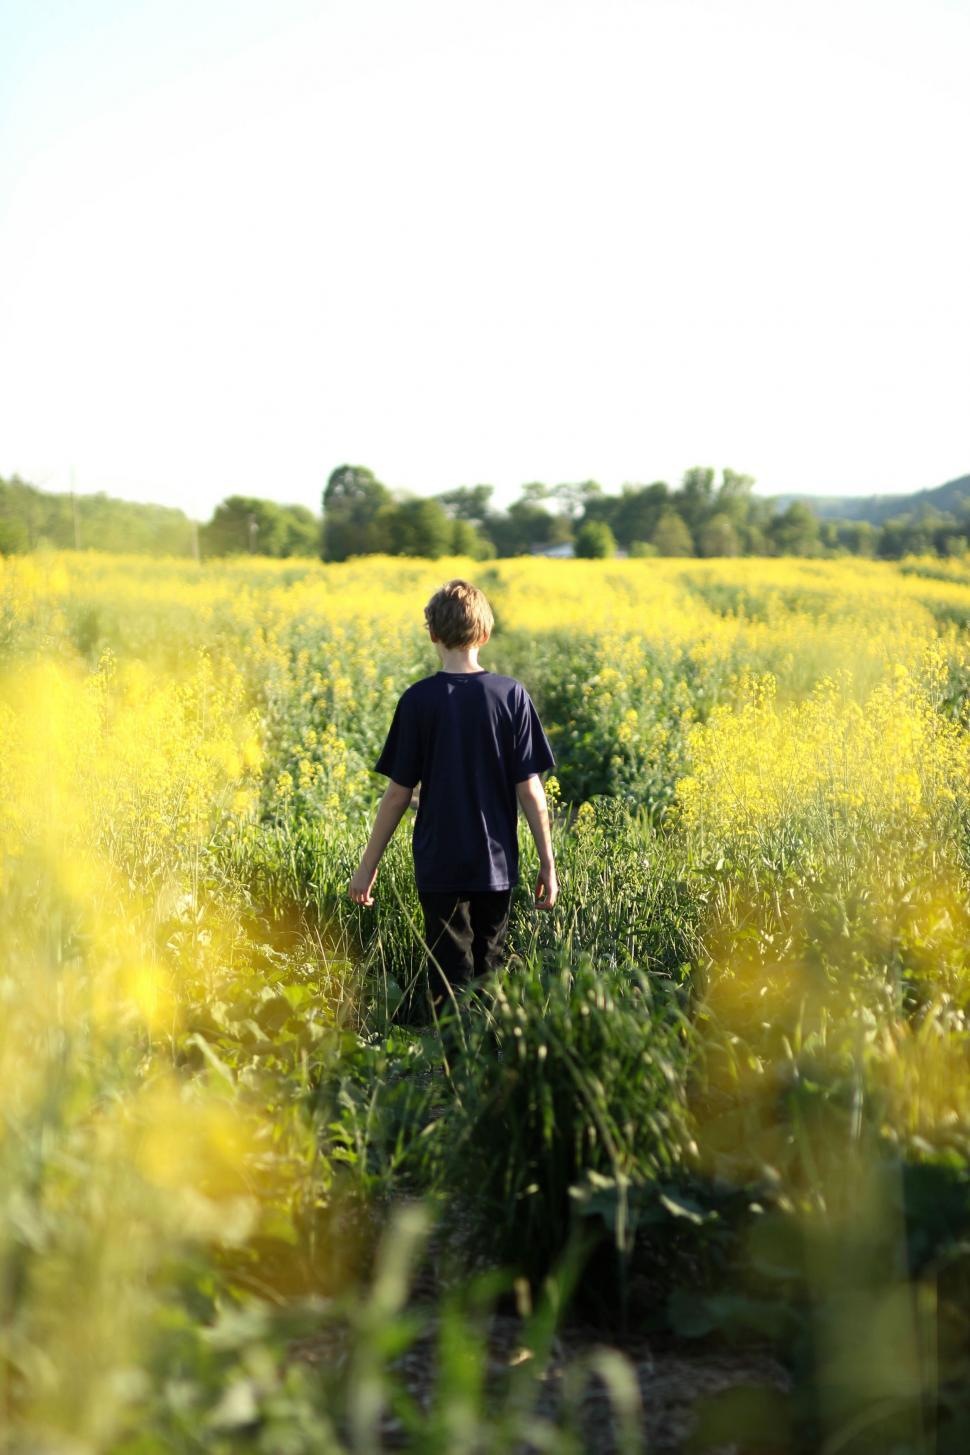 Download Free Stock Photo of Nature People rapeseed oilseed seed field land landscape rural fruit meadow sky grass summer farm agriculture yellow spring countryside season country plant outdoor tree horizon clouds